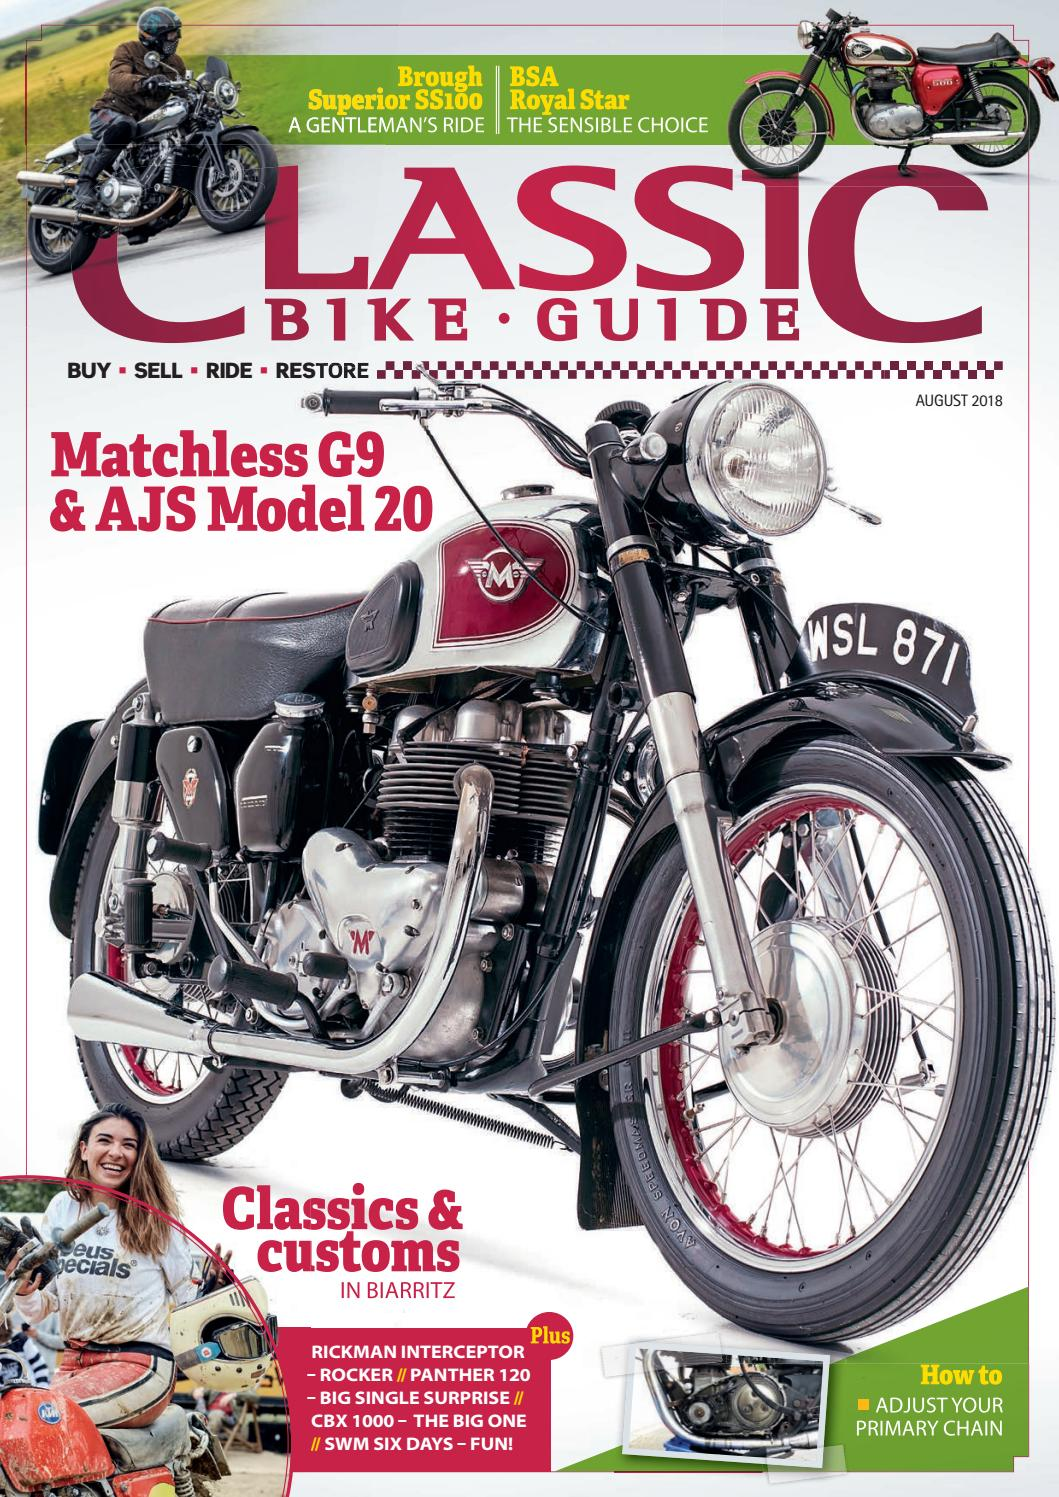 Classic Bike Guide - August 2018 - Issue 328 by Mortons Media Group Ltd -  issuu